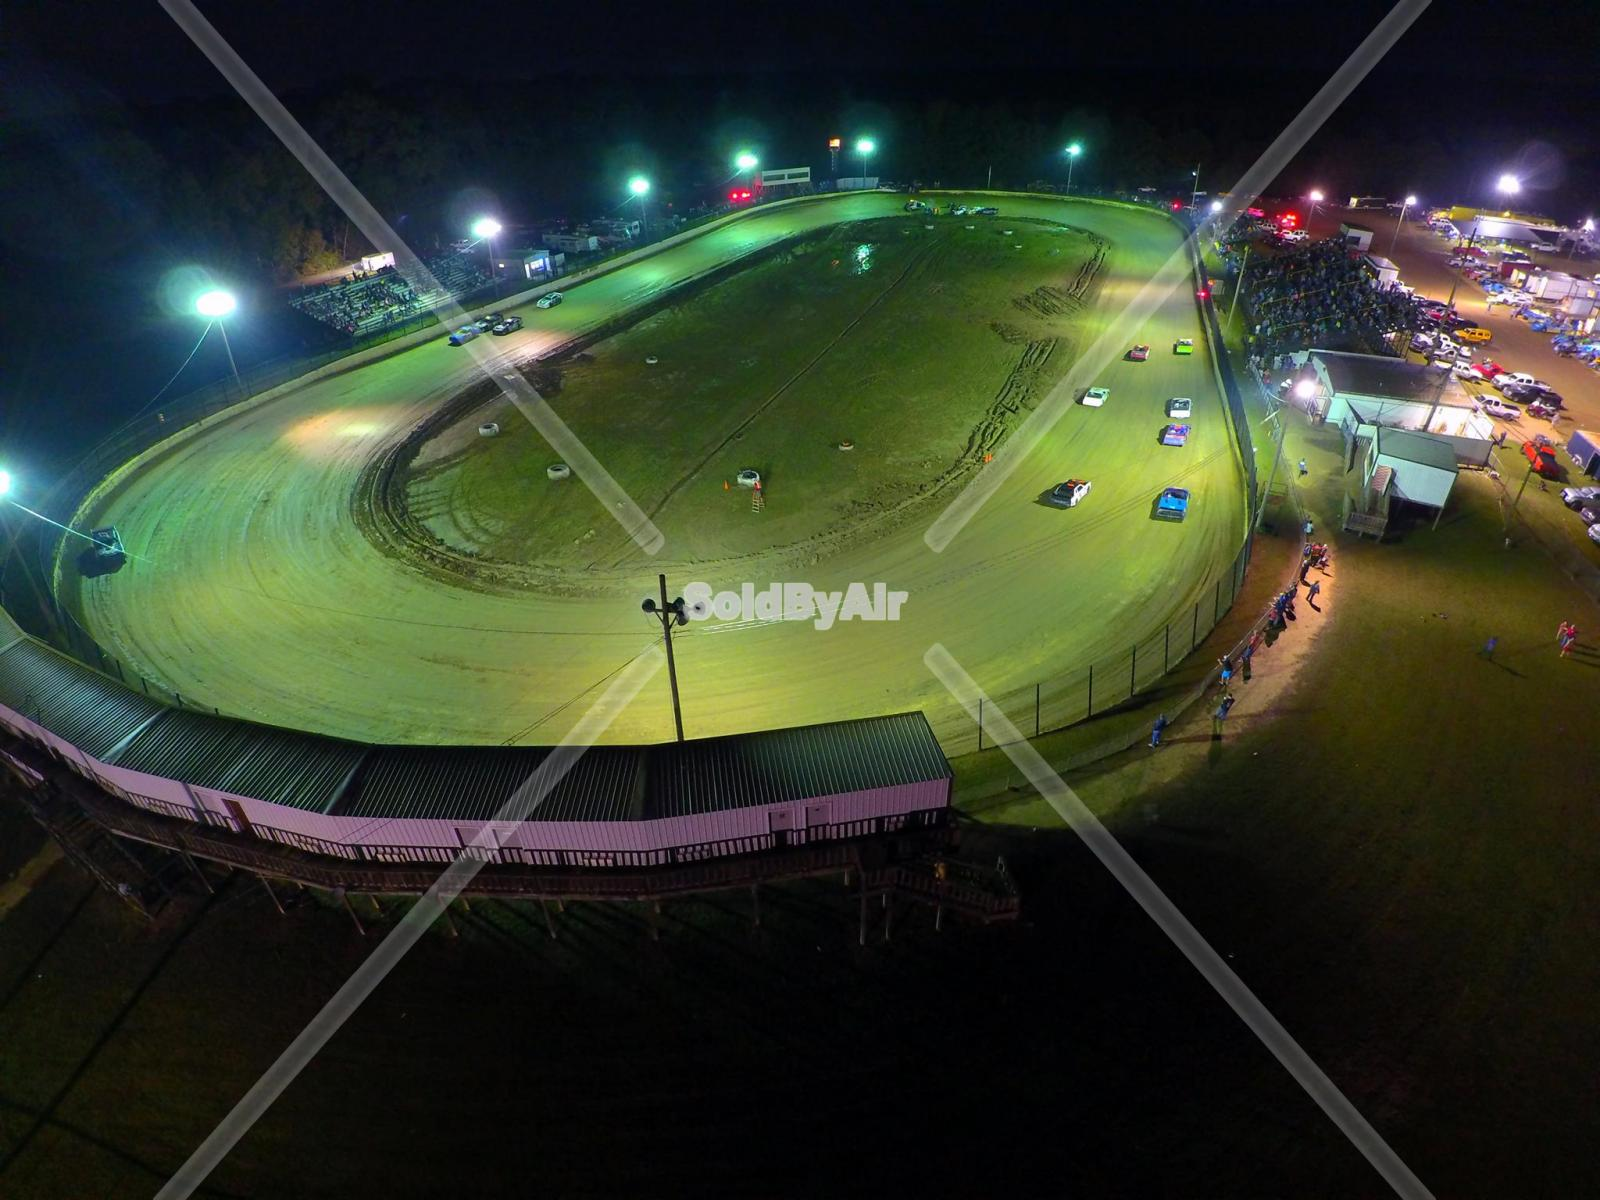 Drone Photo of Racetrack at night in Byram Mississippi